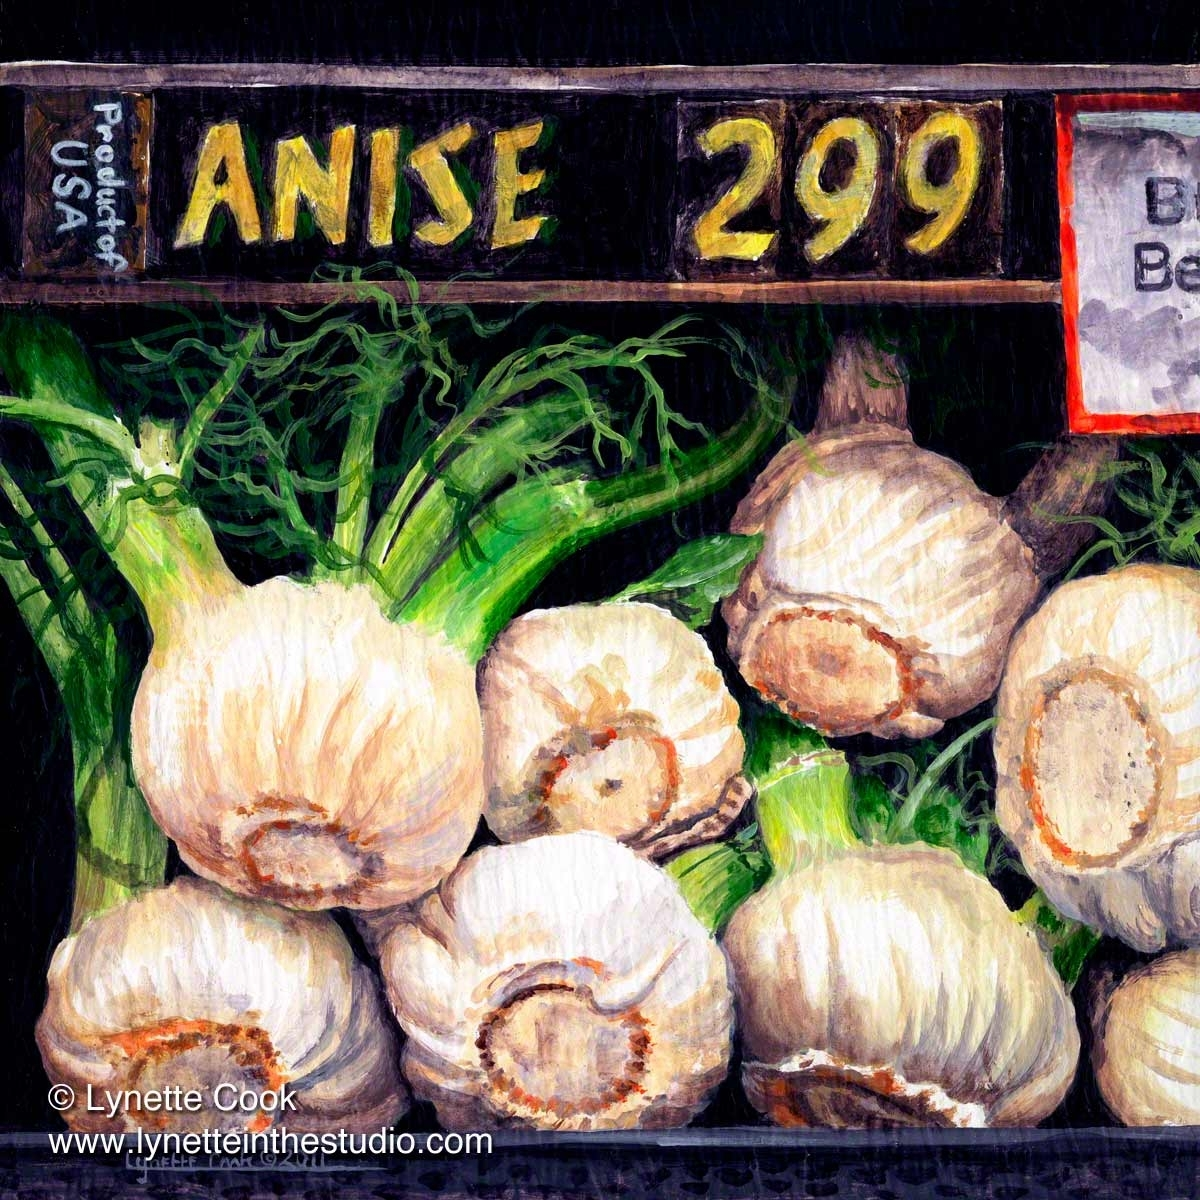 Anise for Sale (large view)